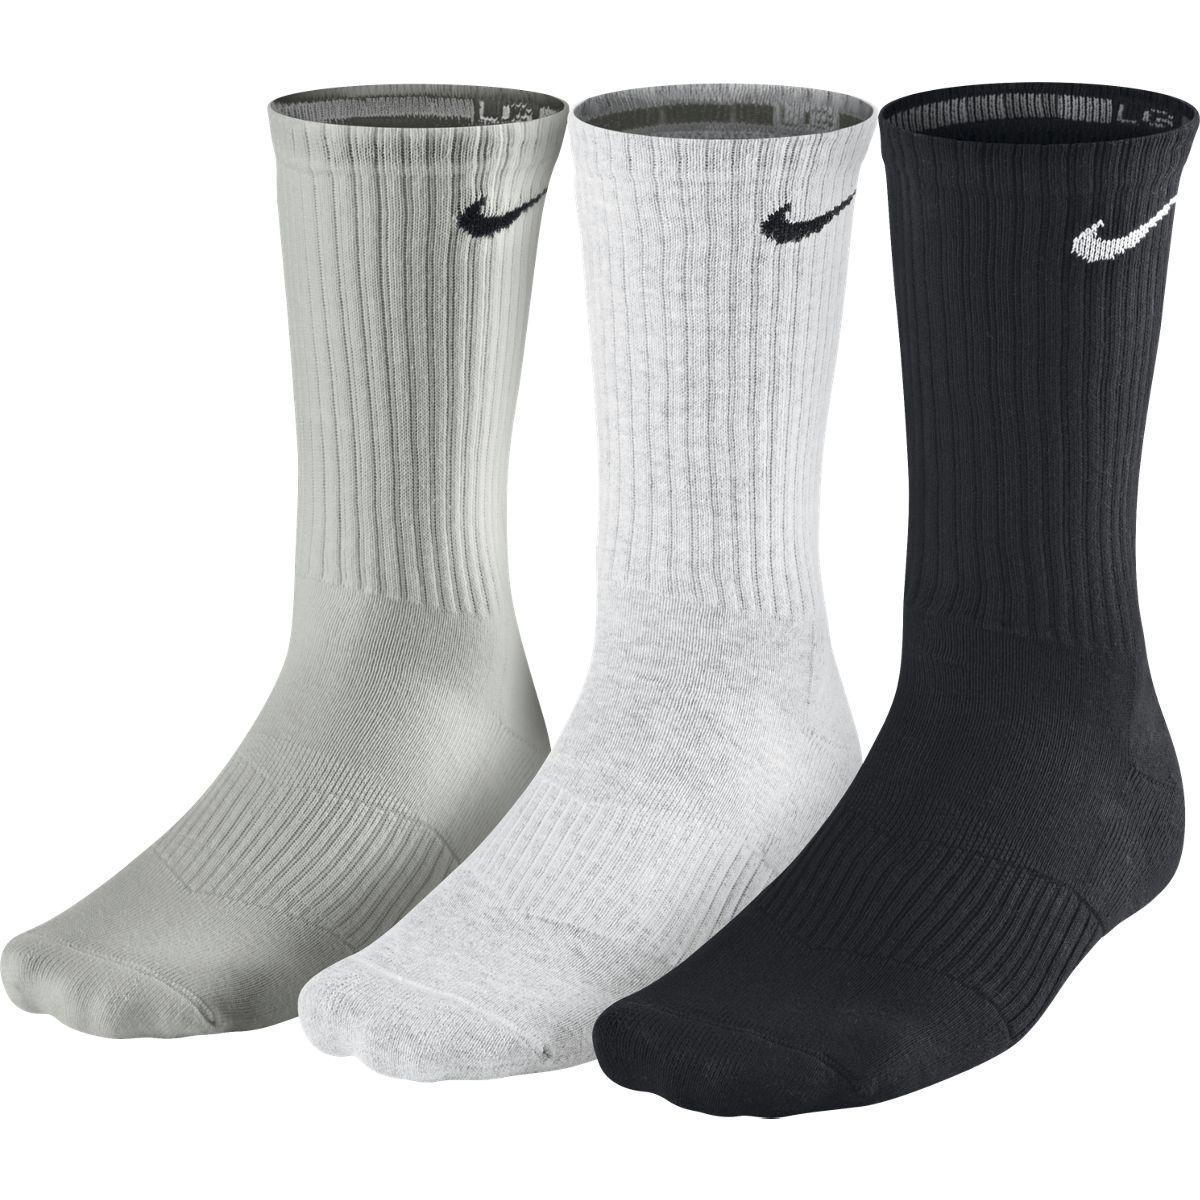 443595696097 Nike Cotton Half-Cushion Crew Socks (3 Pairs) - White Grey Black -  Tennisnuts.com